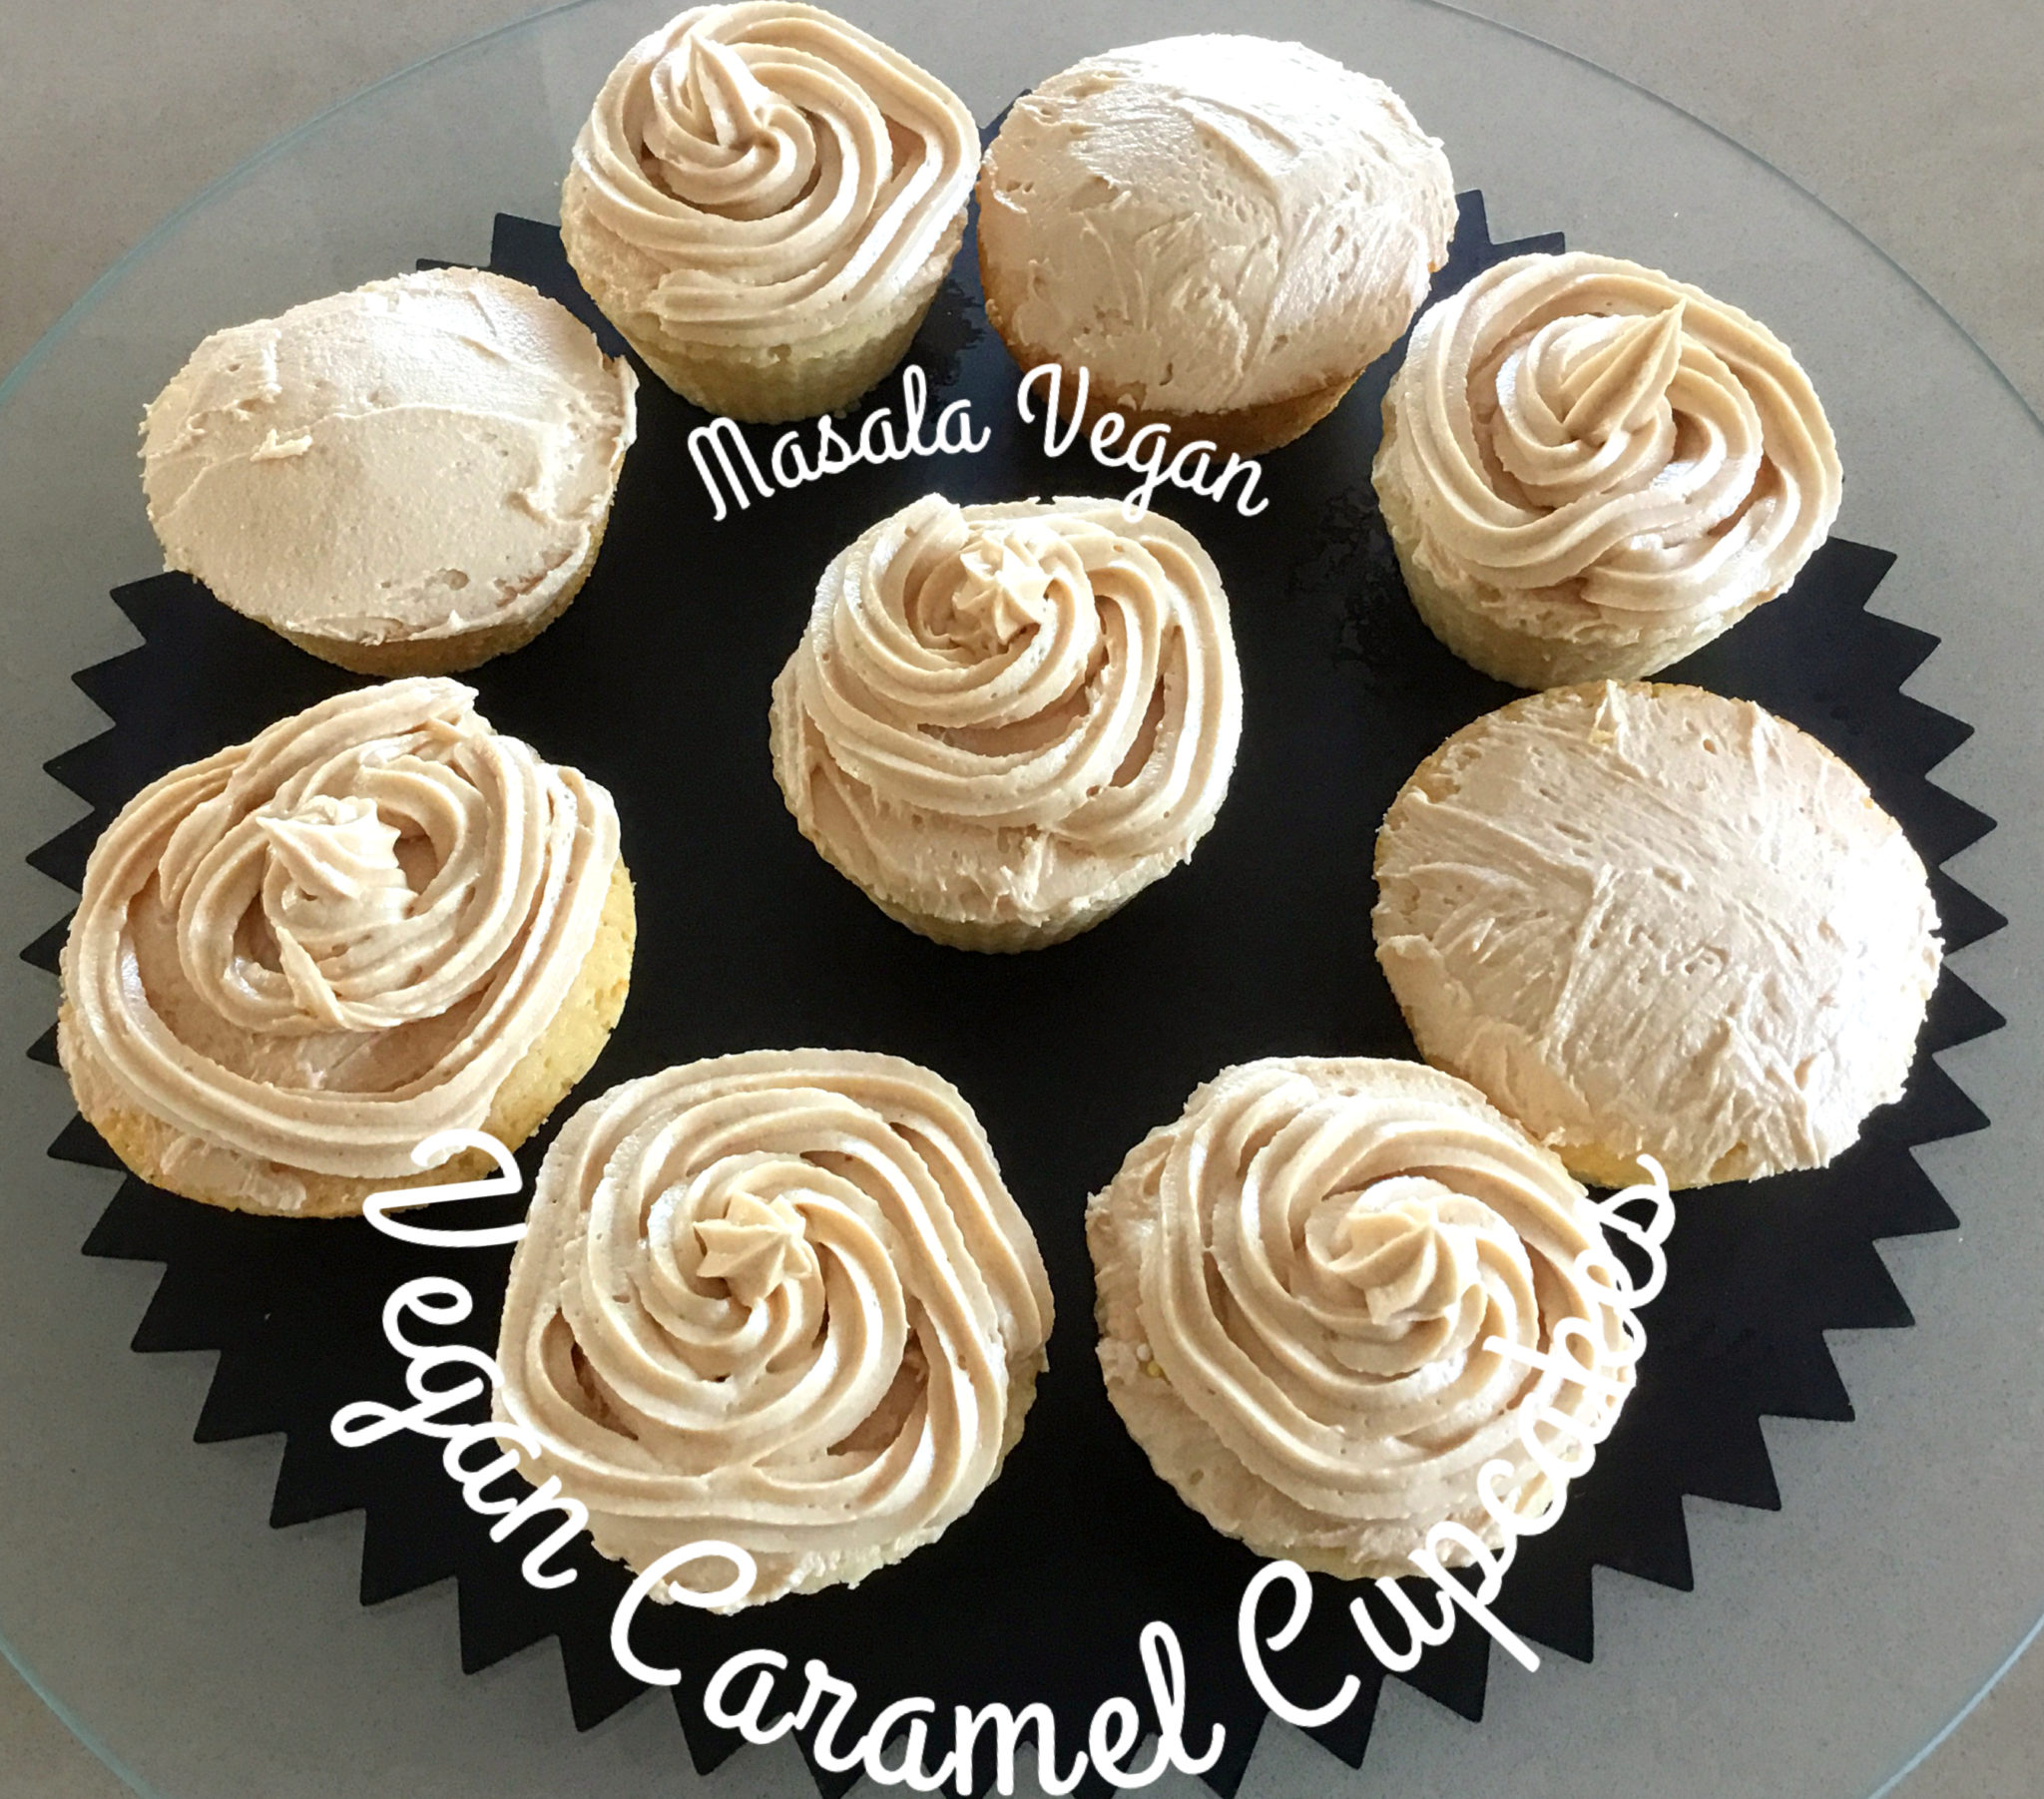 9 vegan caramel cupcakes with icing on a black plate